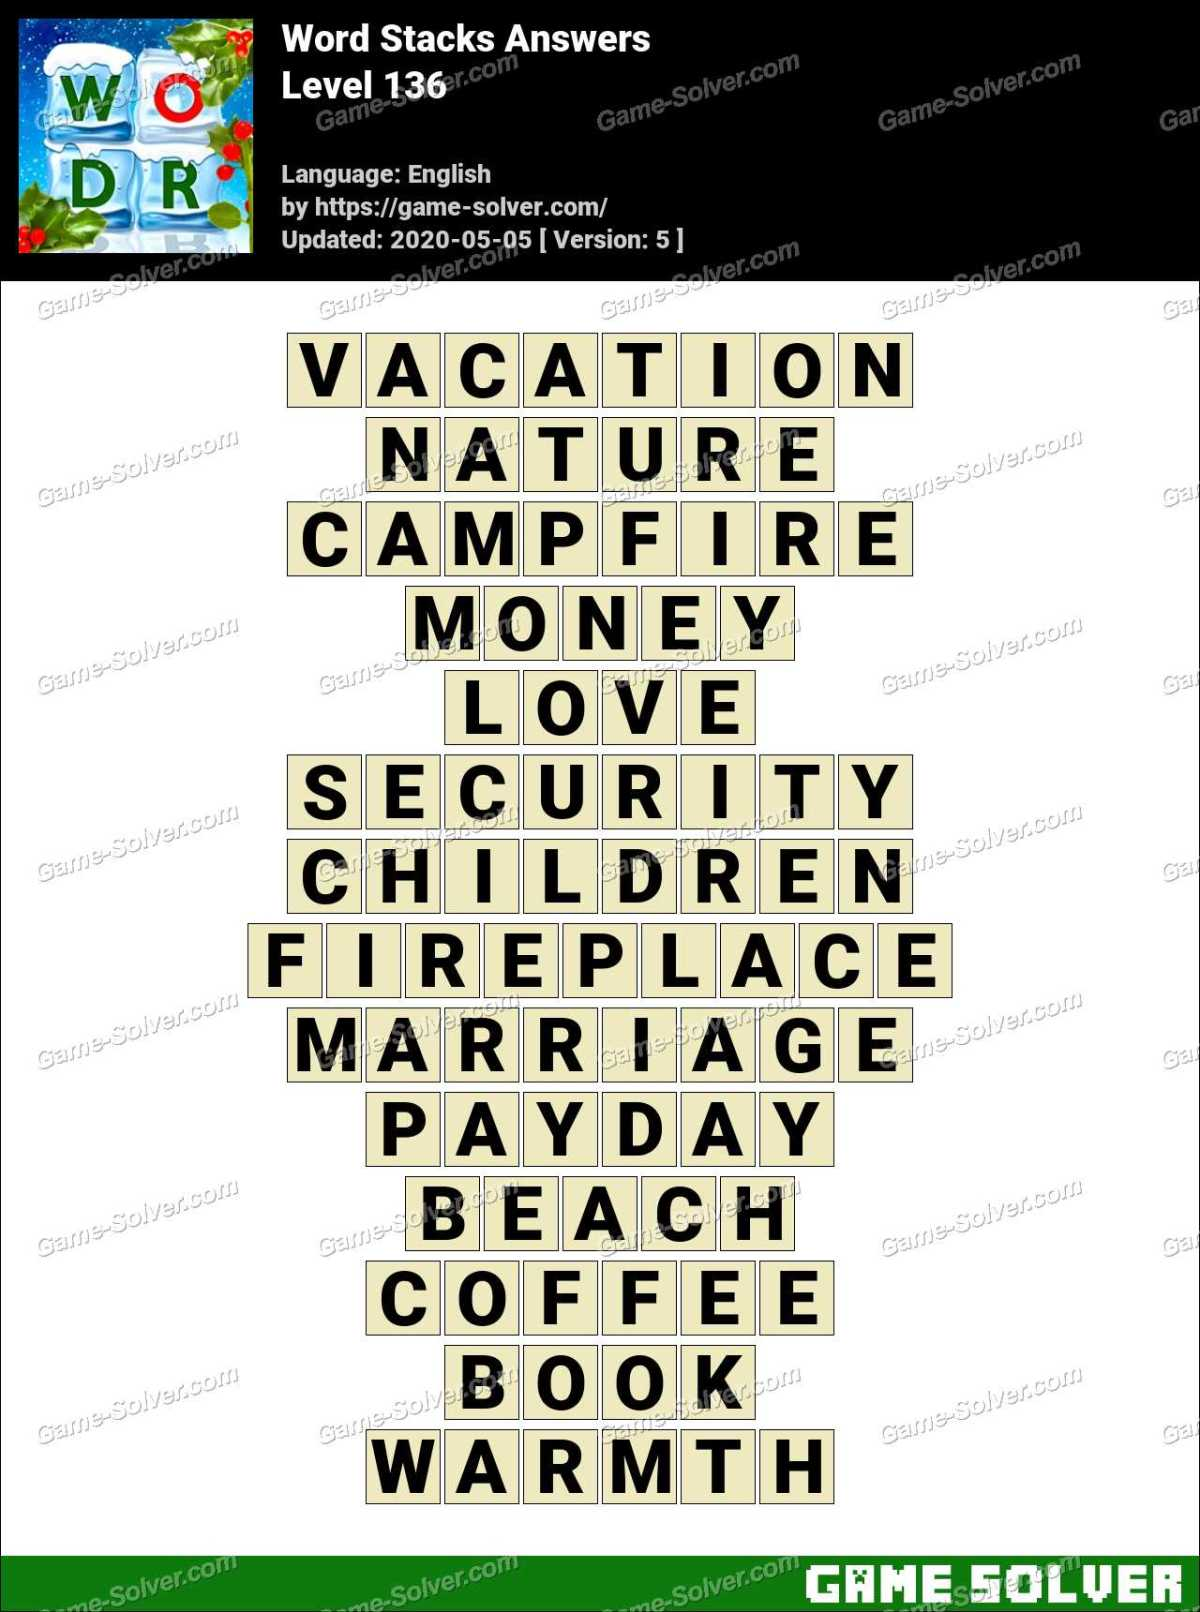 Word Stacks Level 136 Answers Game Solver